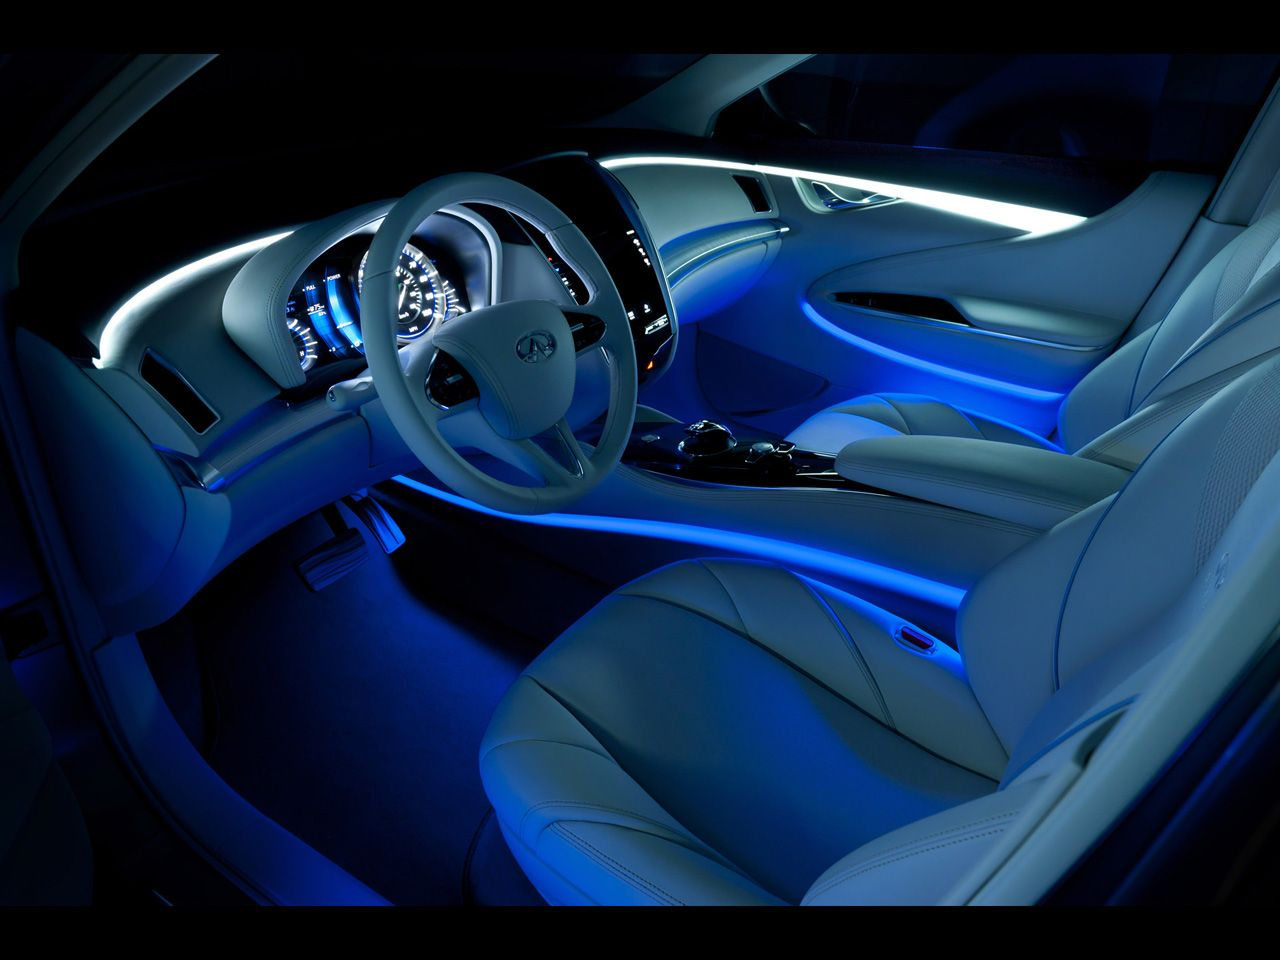 2012 Infiniti Le Concept Stellar Interior I Wish I Can So Pimpthe Inside Of My Soon To Be